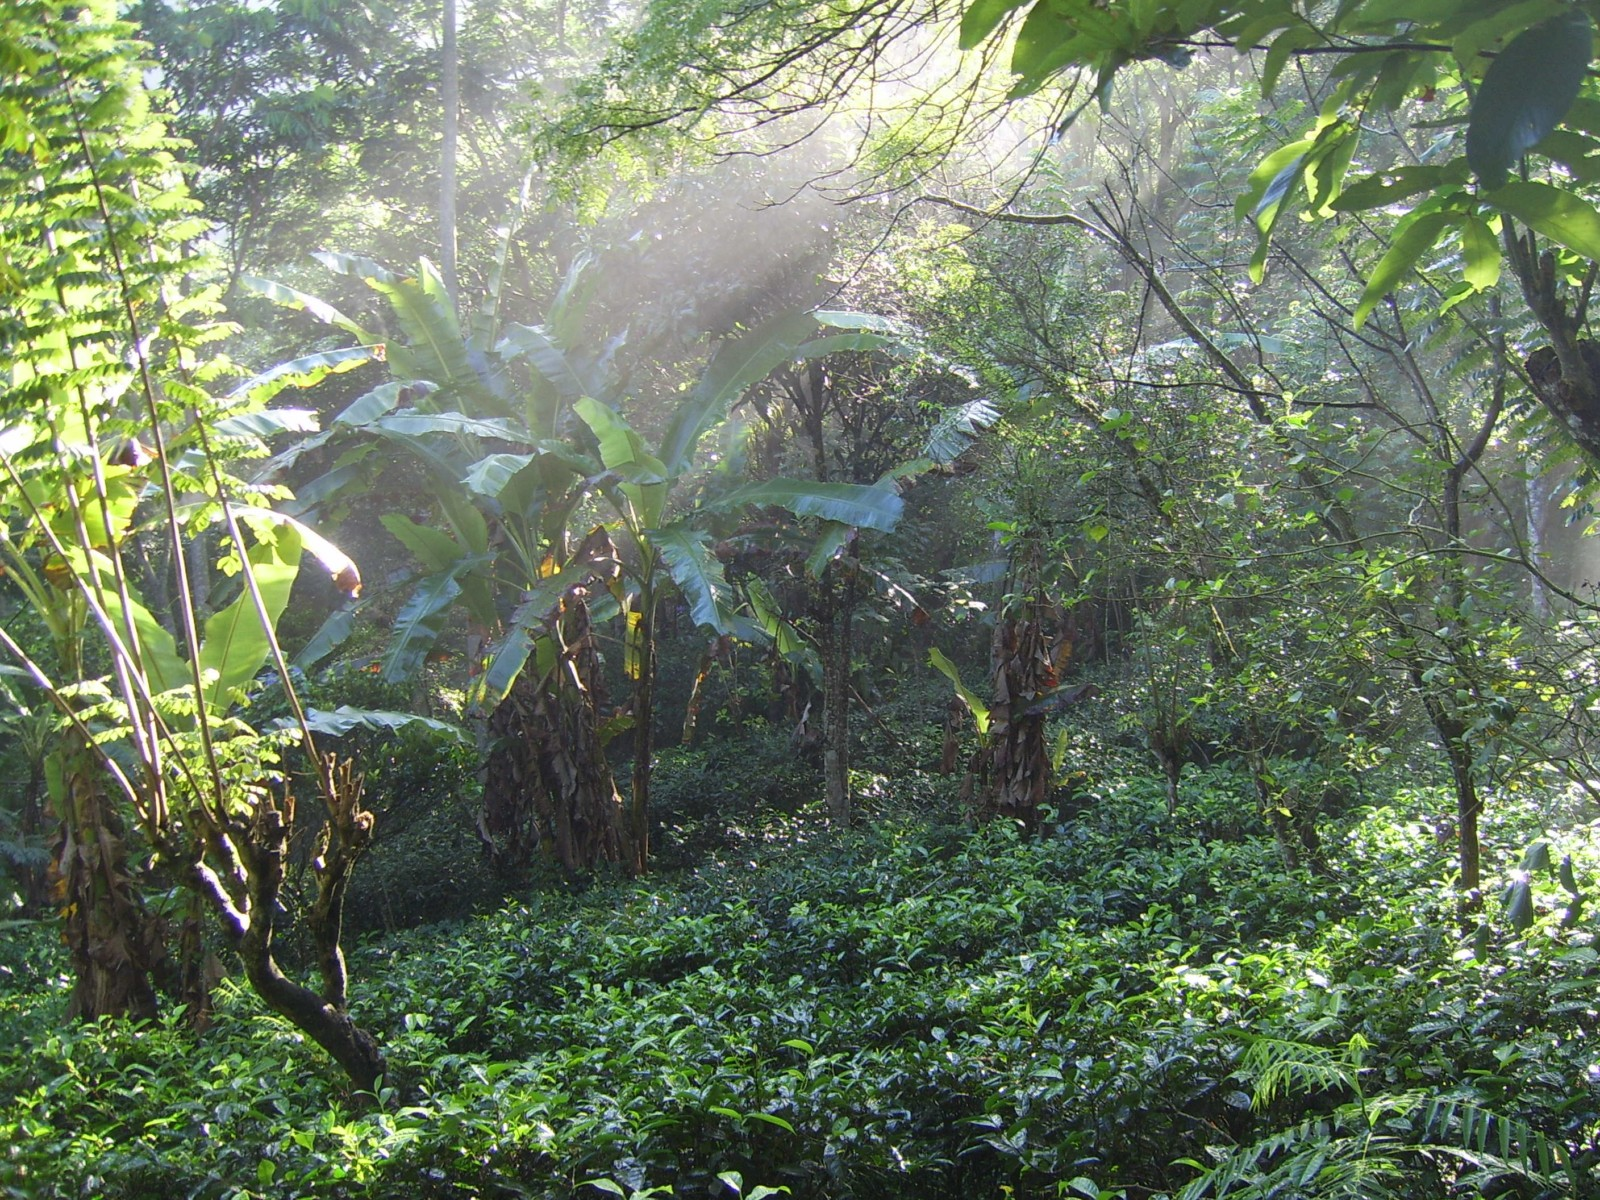 ProFound works towards protecting biodiversity and natural resources